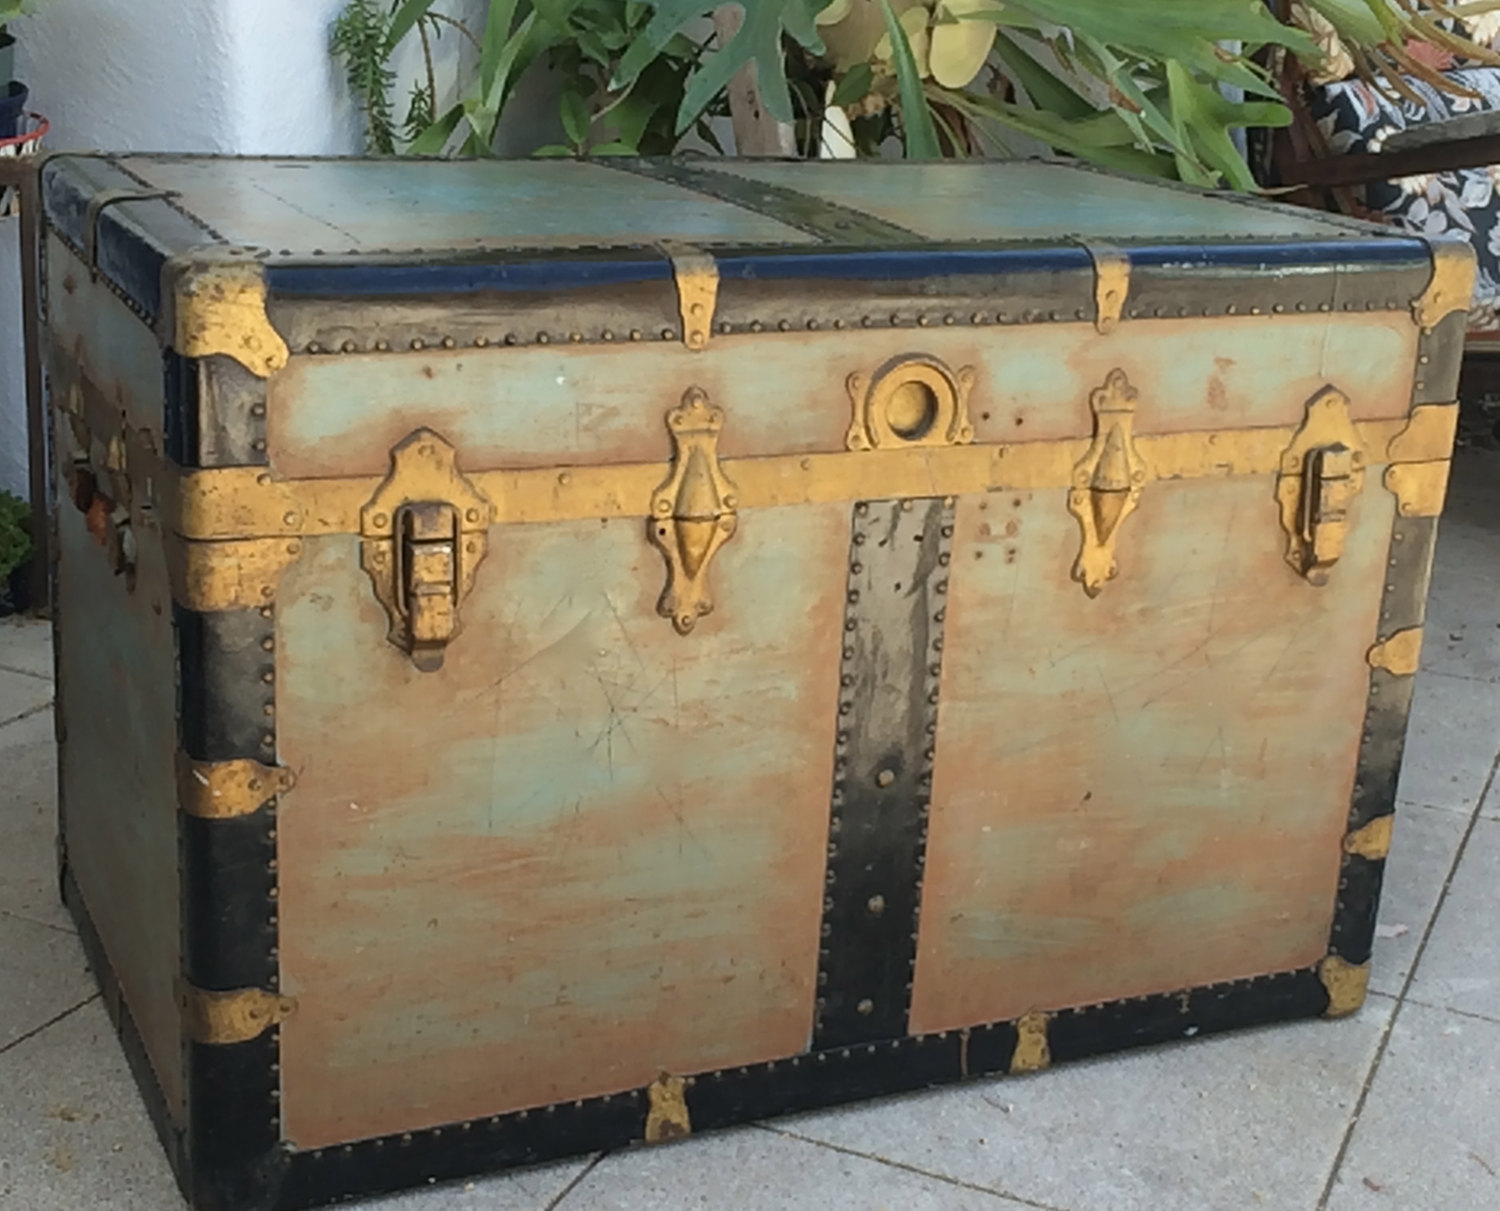 Vintage XL Steamer Trunk Coffee Table SteamPunk Storage Trunk Trunk Coffee  Table Flat Top Trunk Vintage